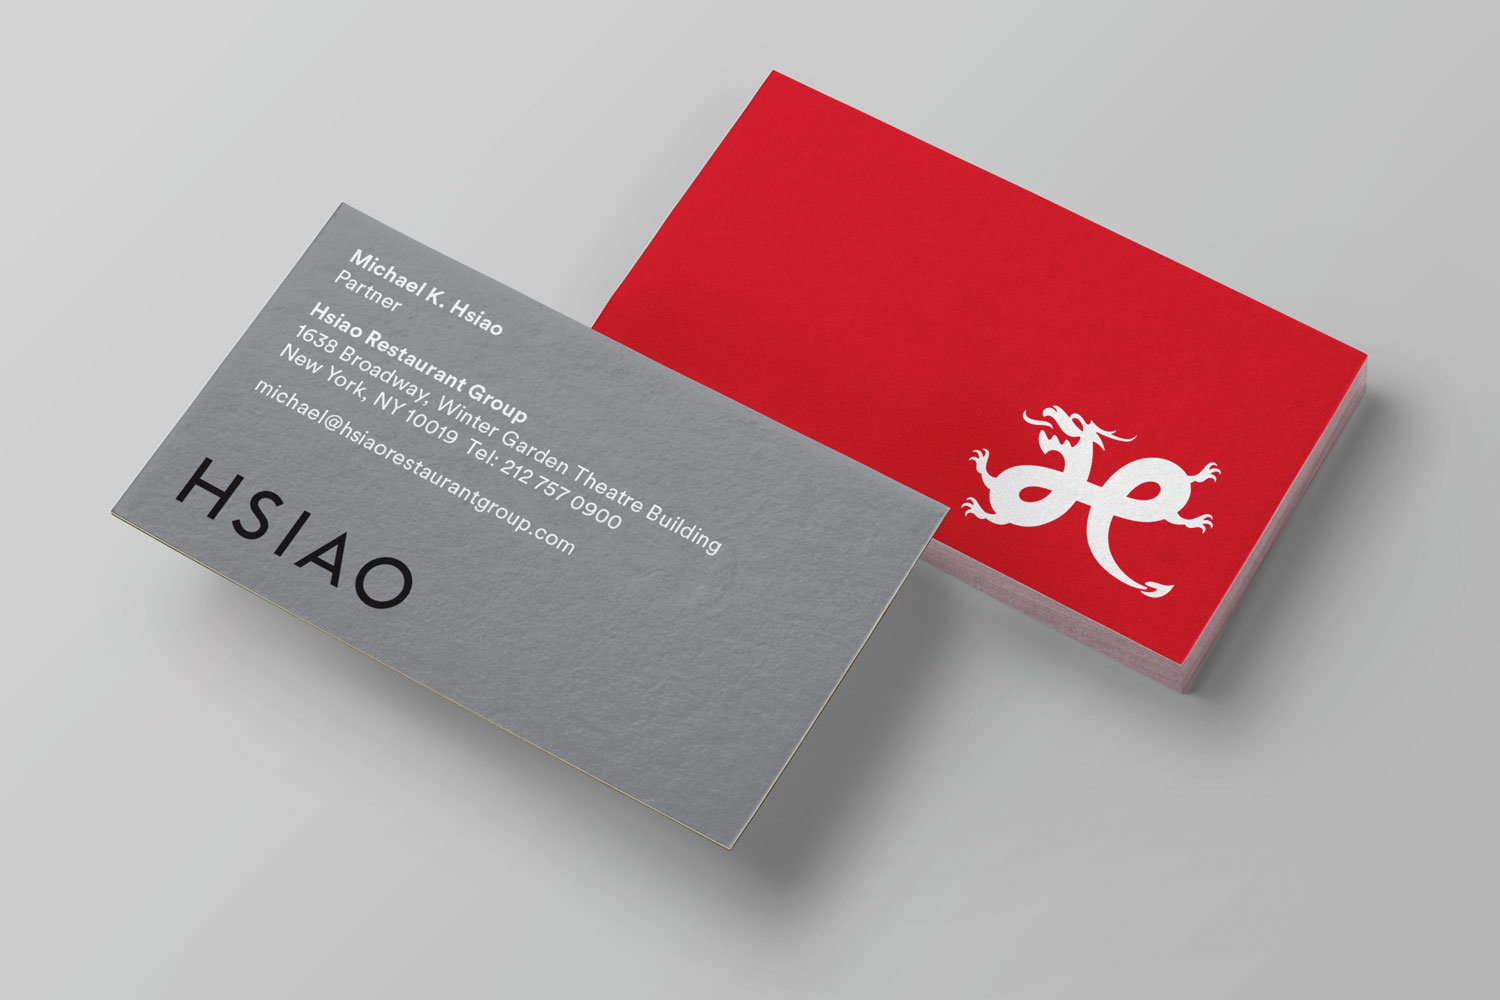 Hsiao Restaurant Group business cards